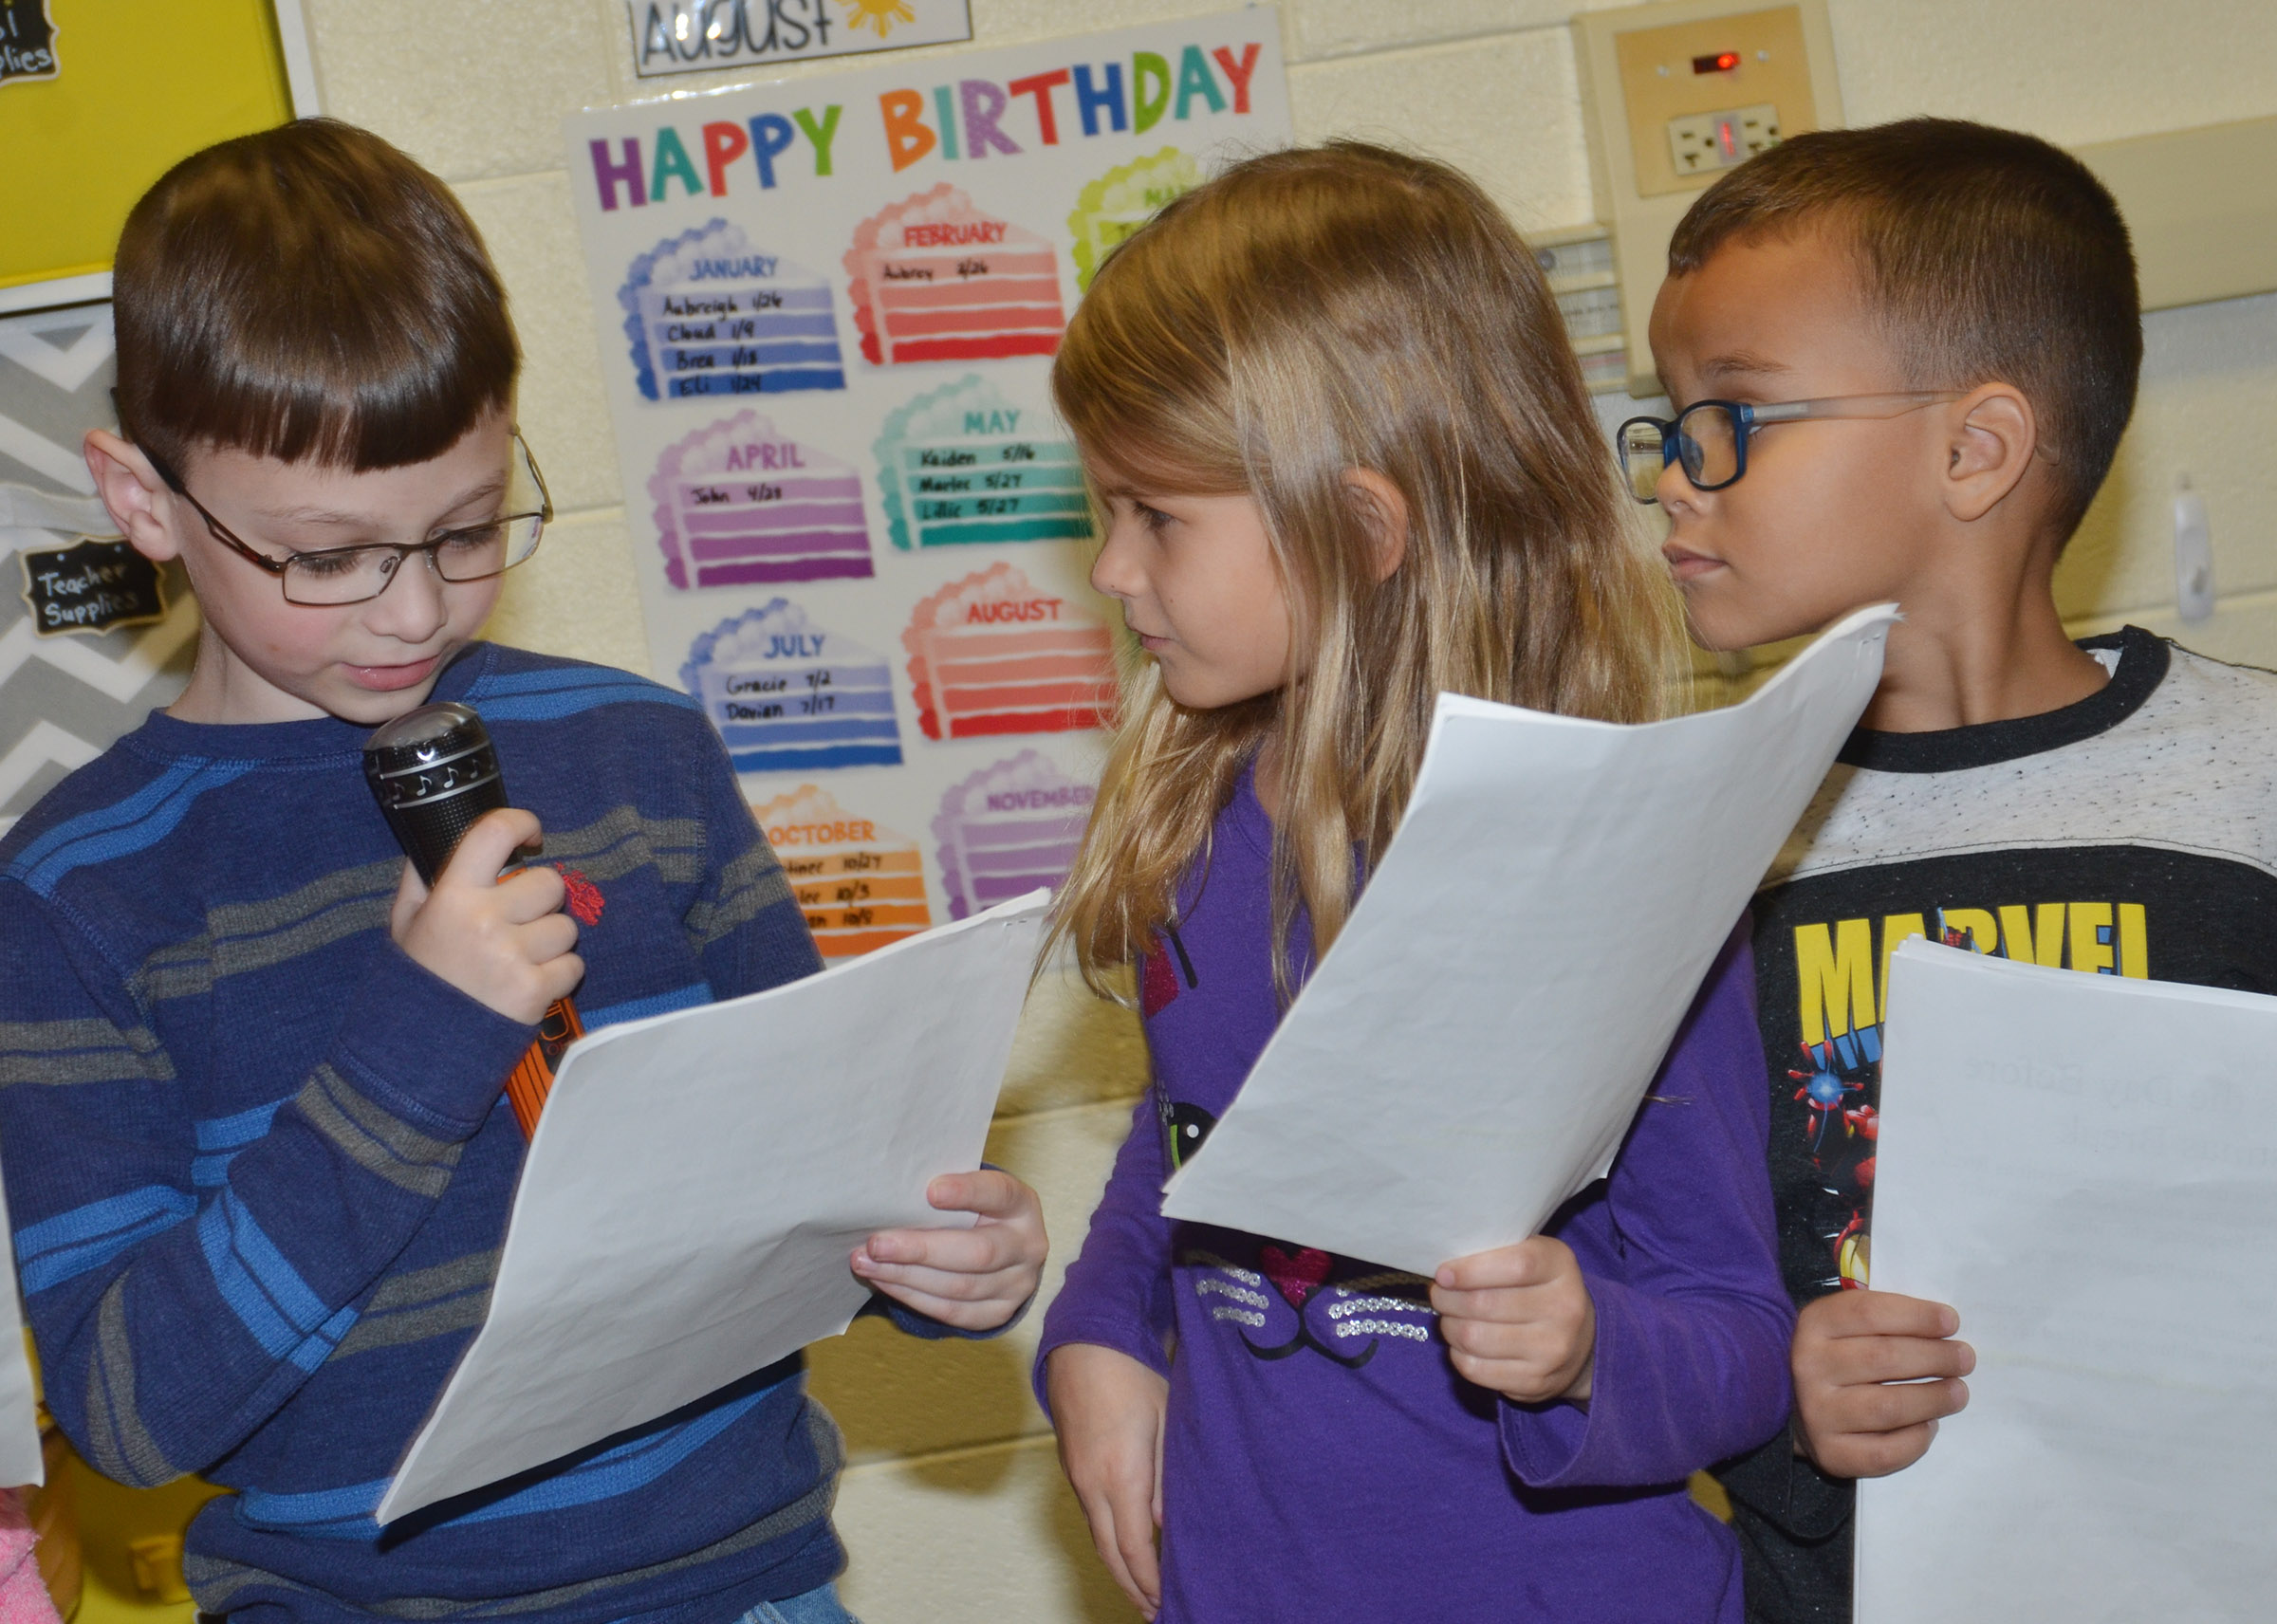 CES first-grader Parker Newton delivers his lines as classmates Gracie Gebler and Davian Taylor wait for their cue.